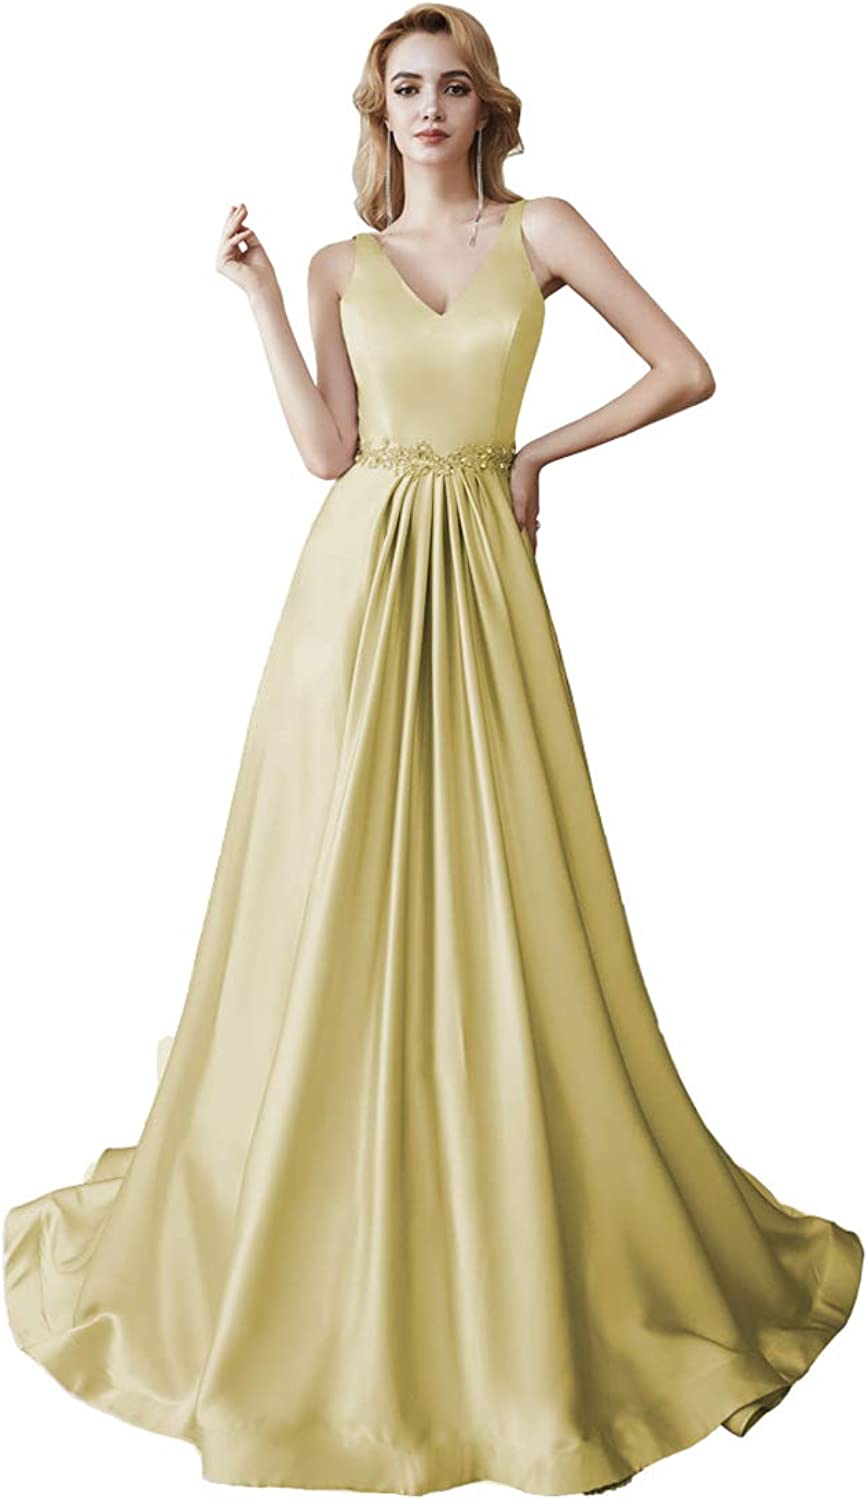 Clothfun Women's Long V Neck Beaded Prom Dresses Satin Simple A Line Formal Evening Party Gowns PM25